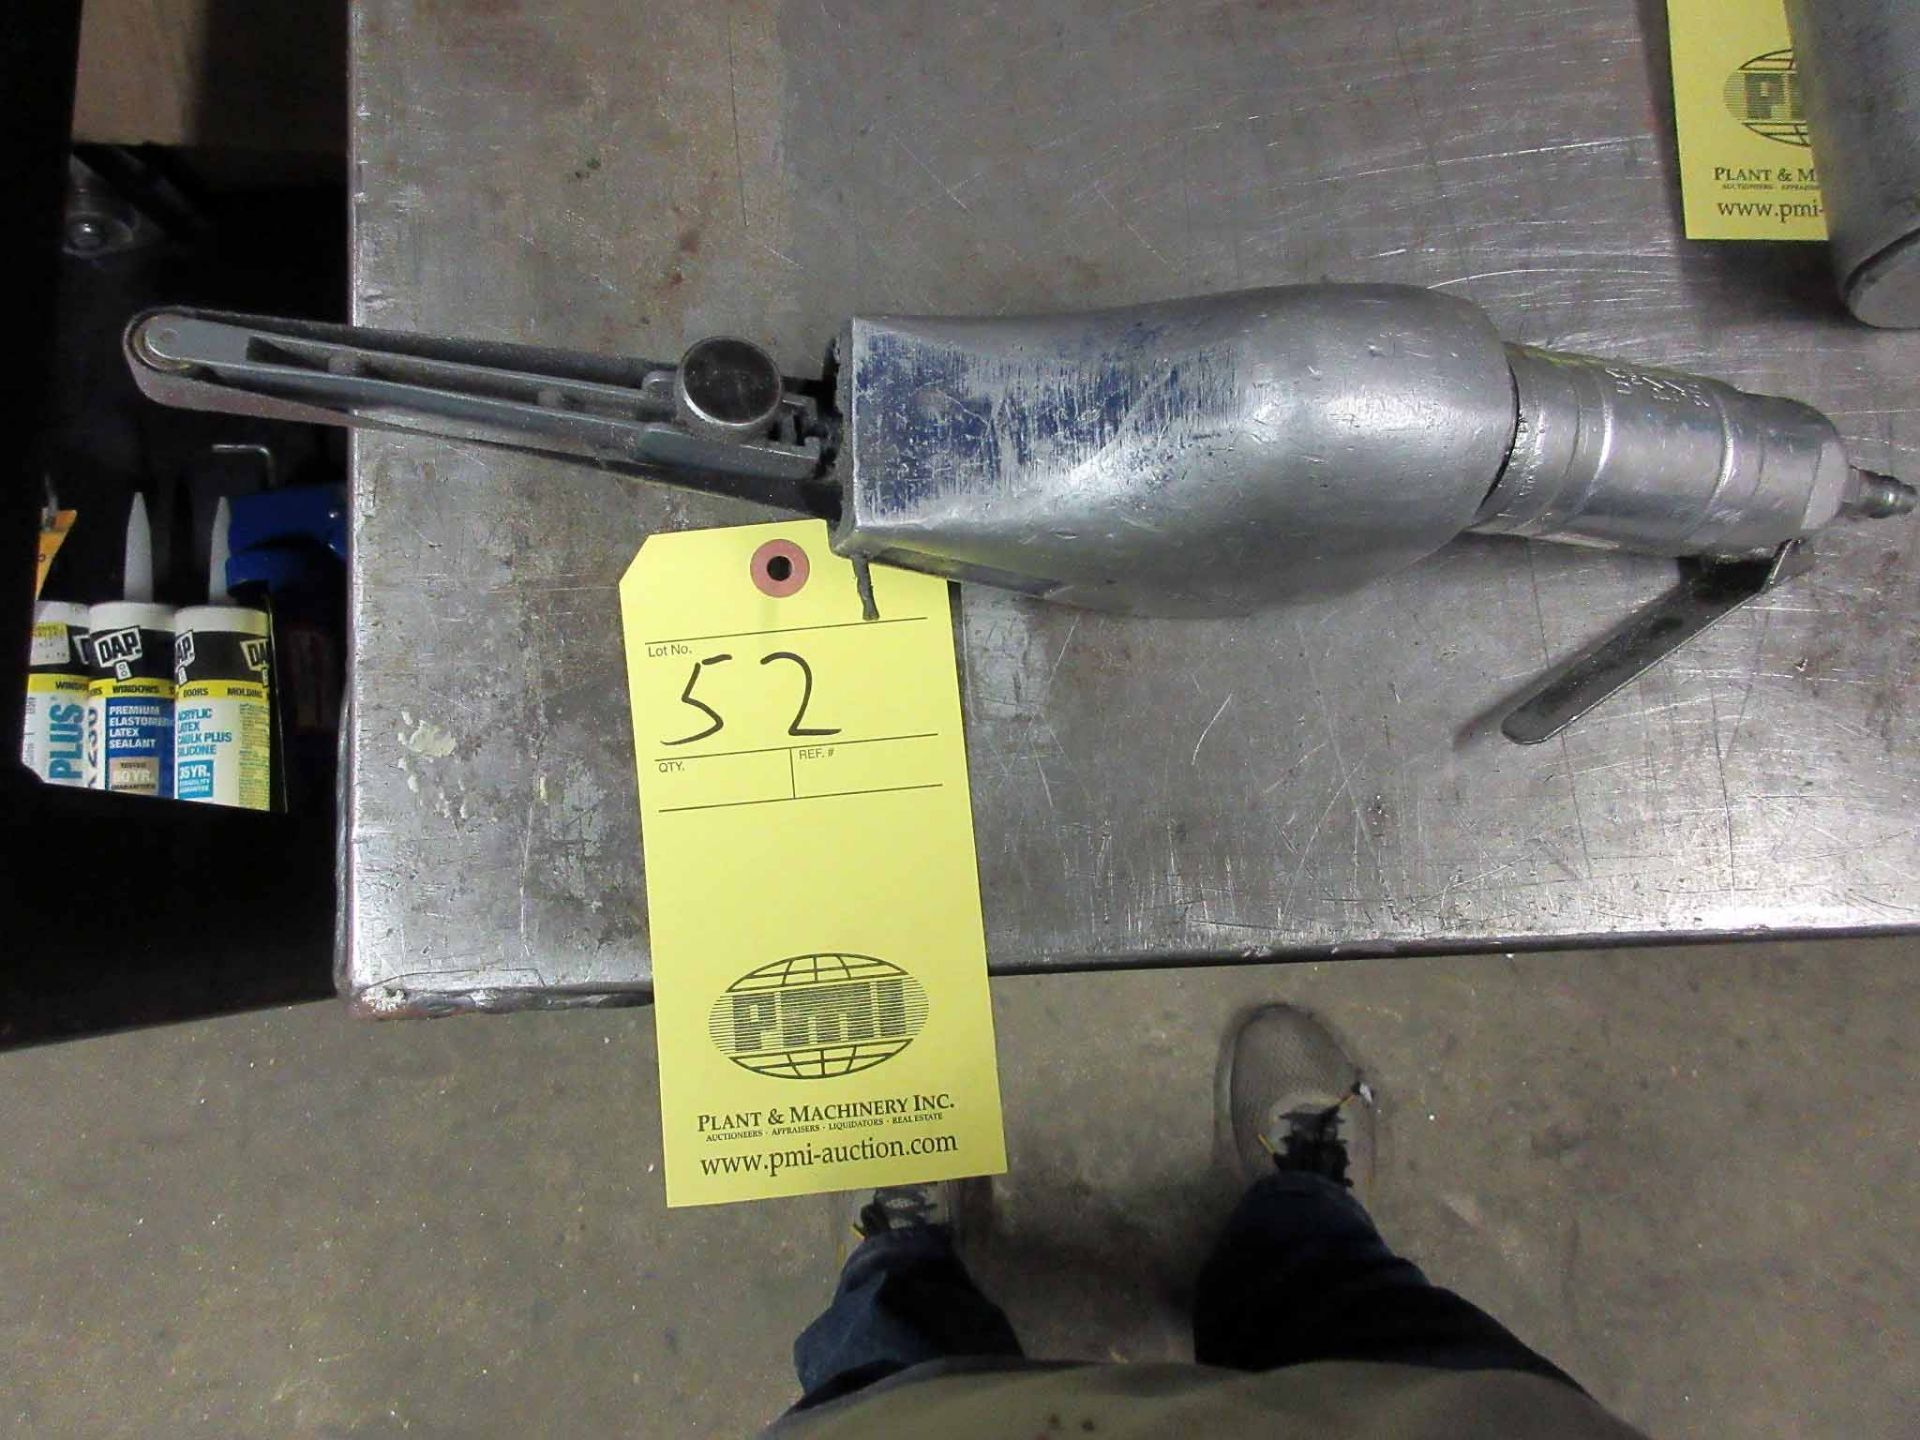 Lot 52 - HAND SANDER, air operated